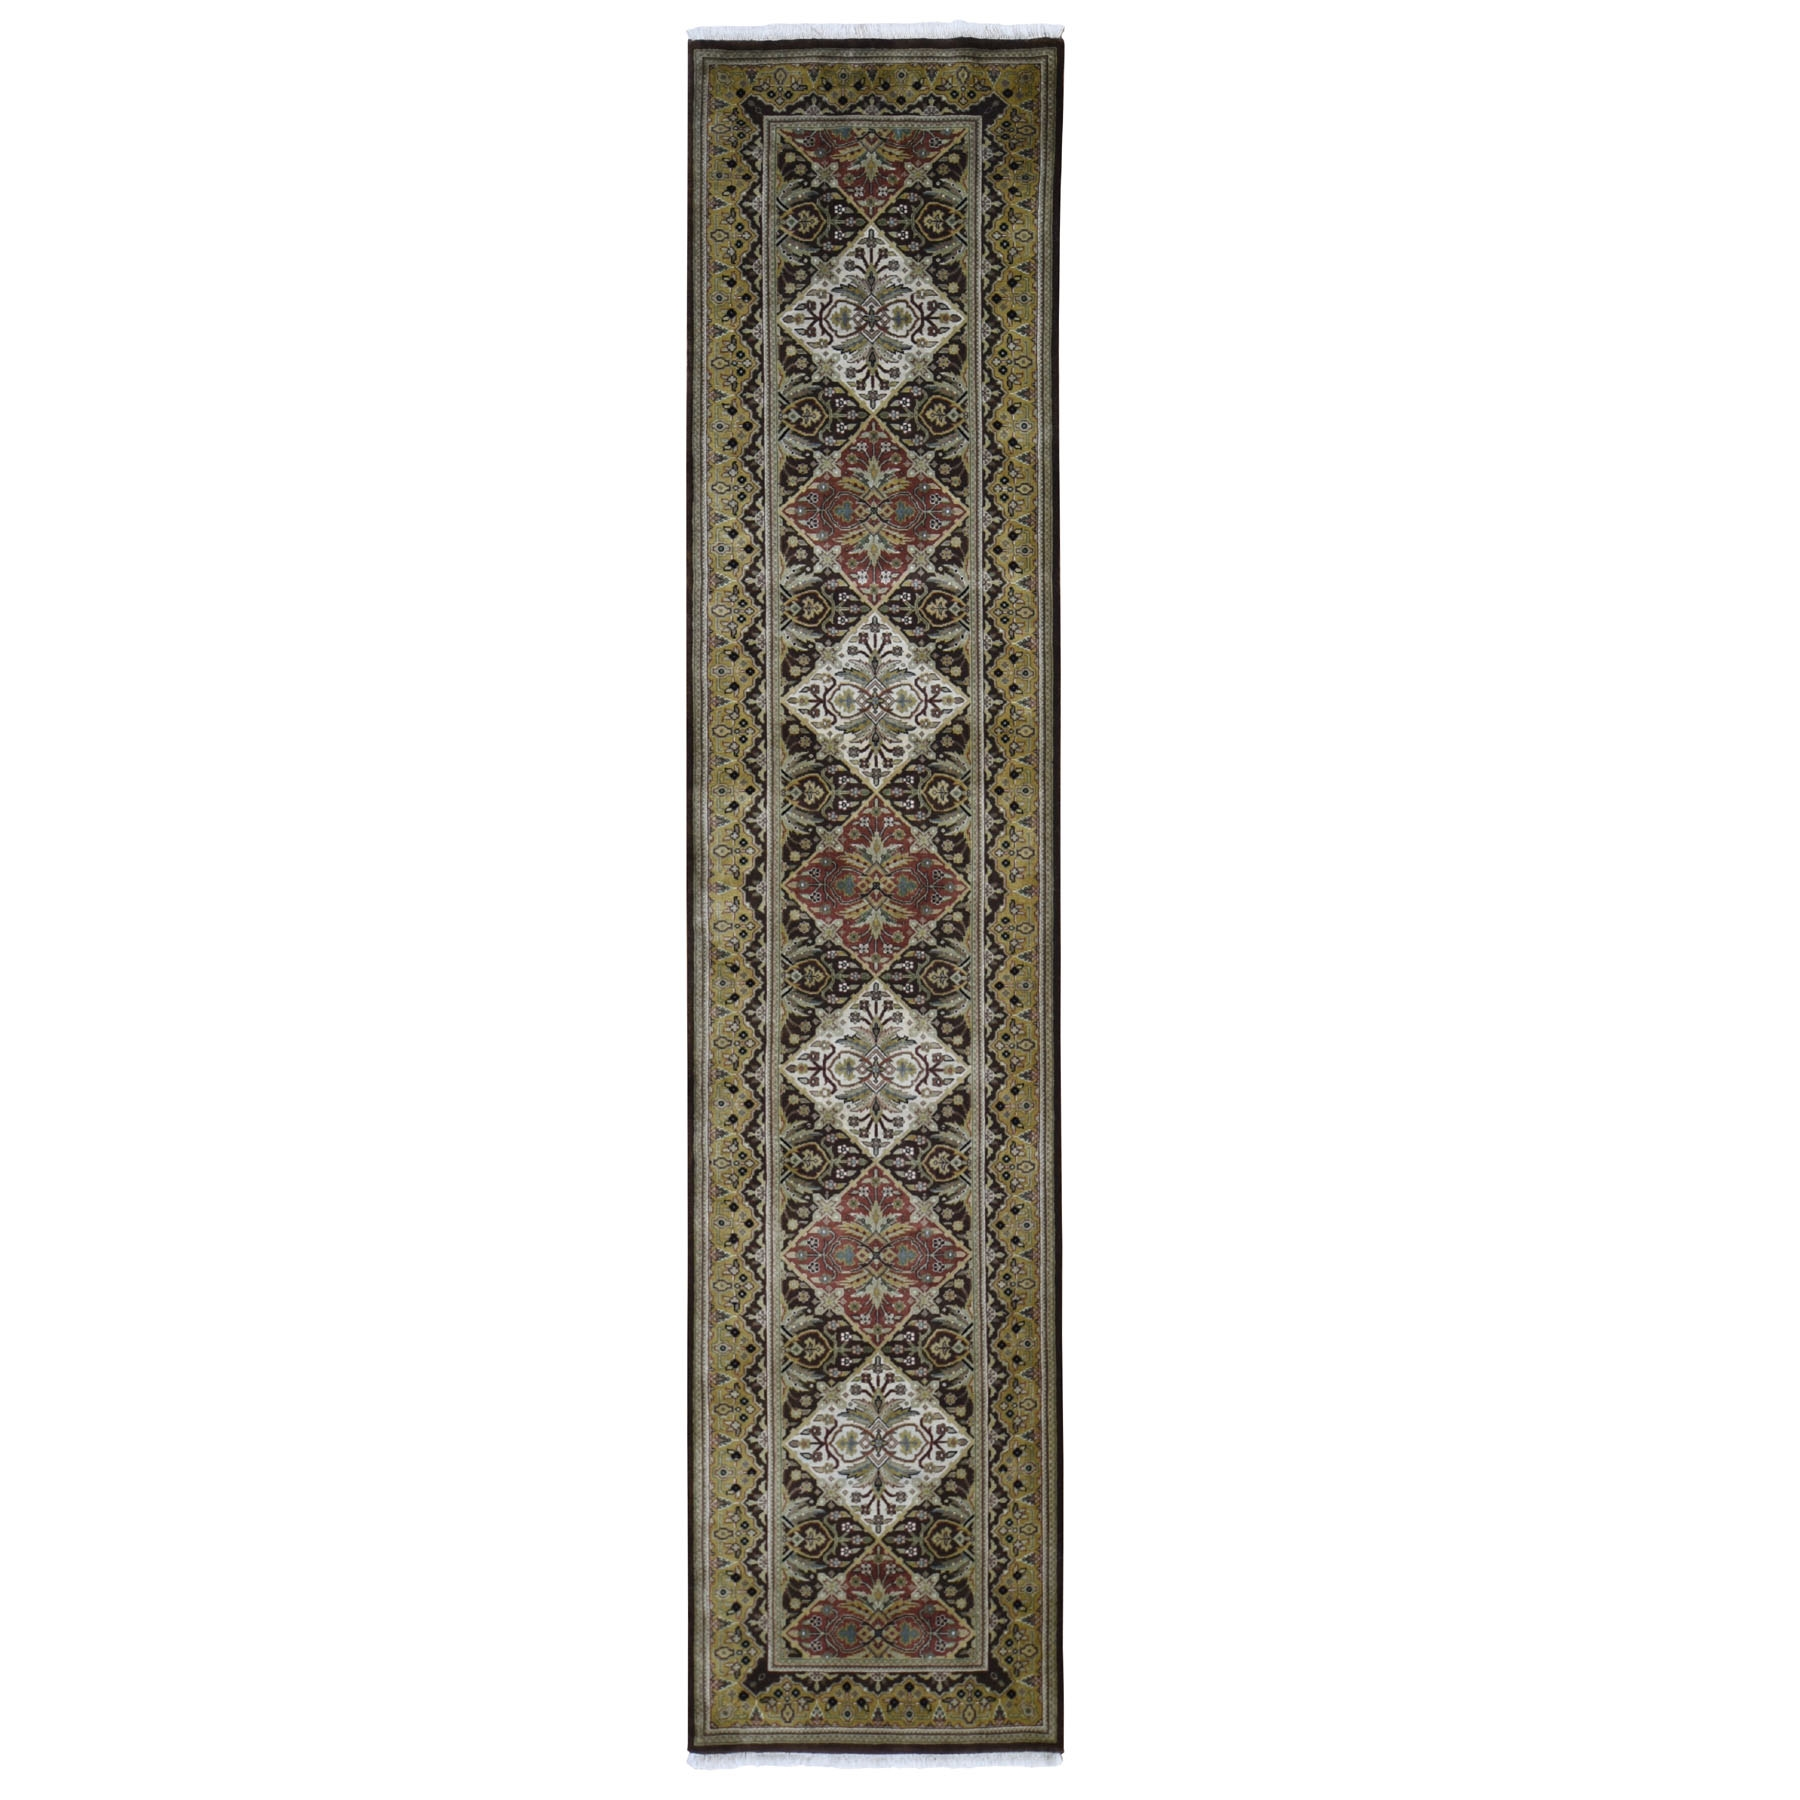 Pirniakan Collection Hand Knotted Brown Rug No: 1118402